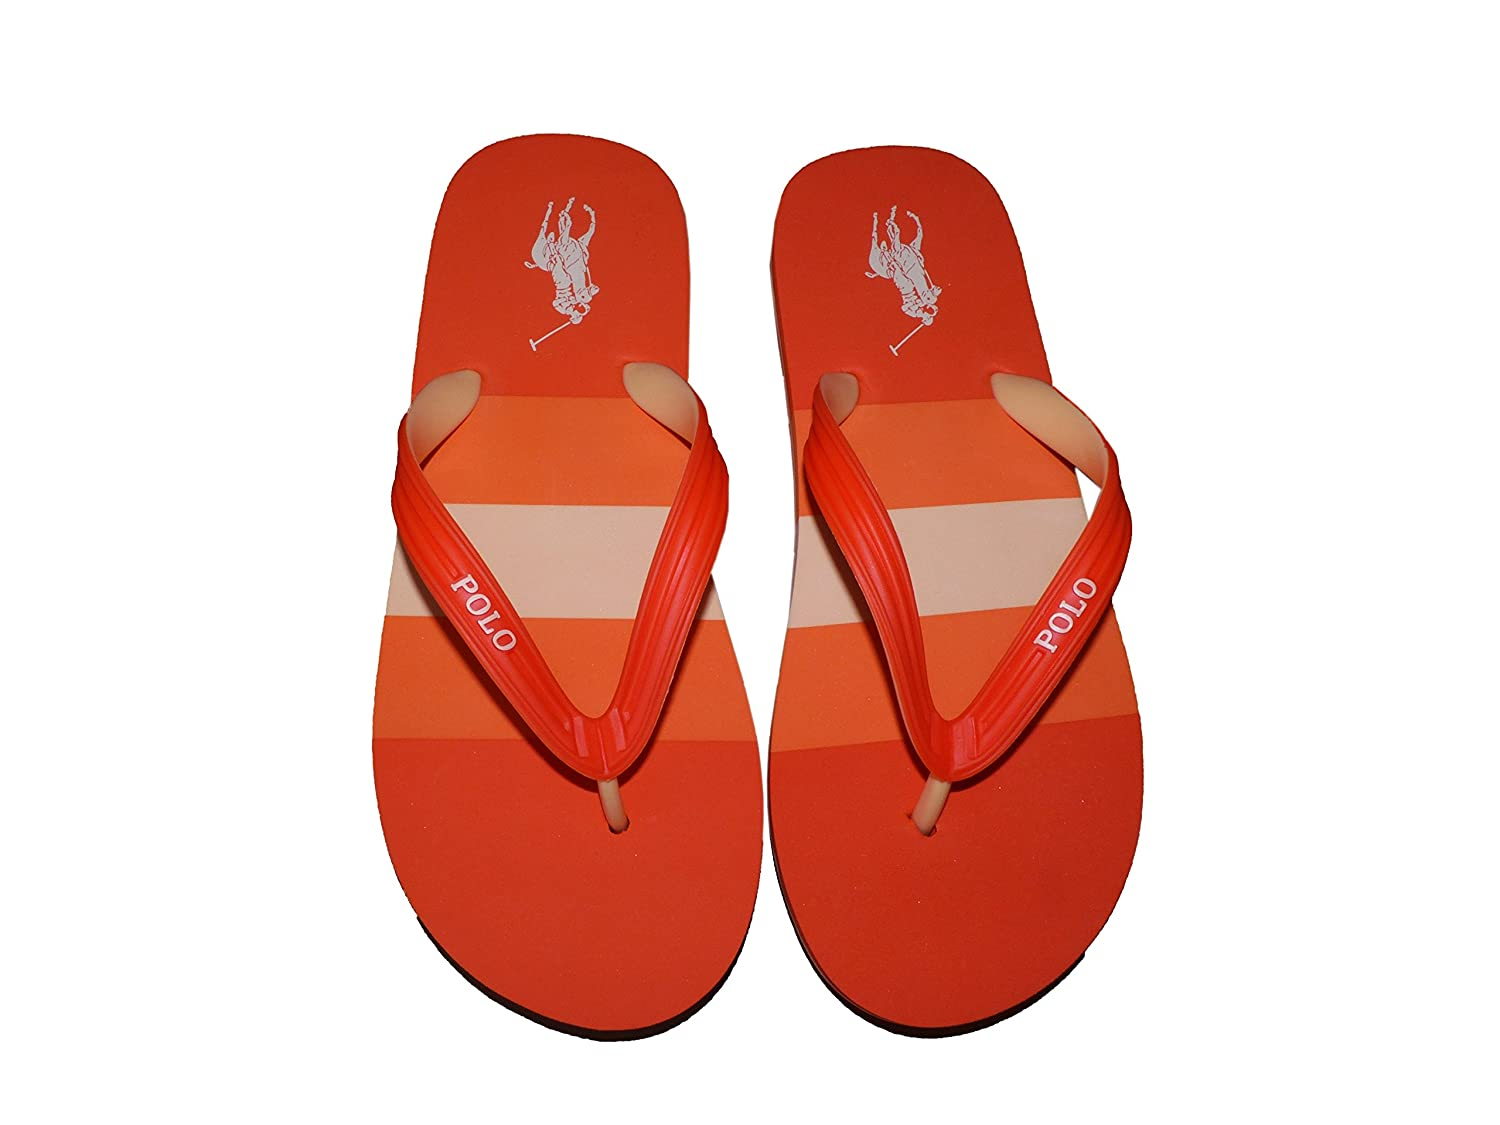 CHANCLAS POLO RALPH LAUREN - XZA5I-XYA5I-XW9XT-T43: Amazon.es ...